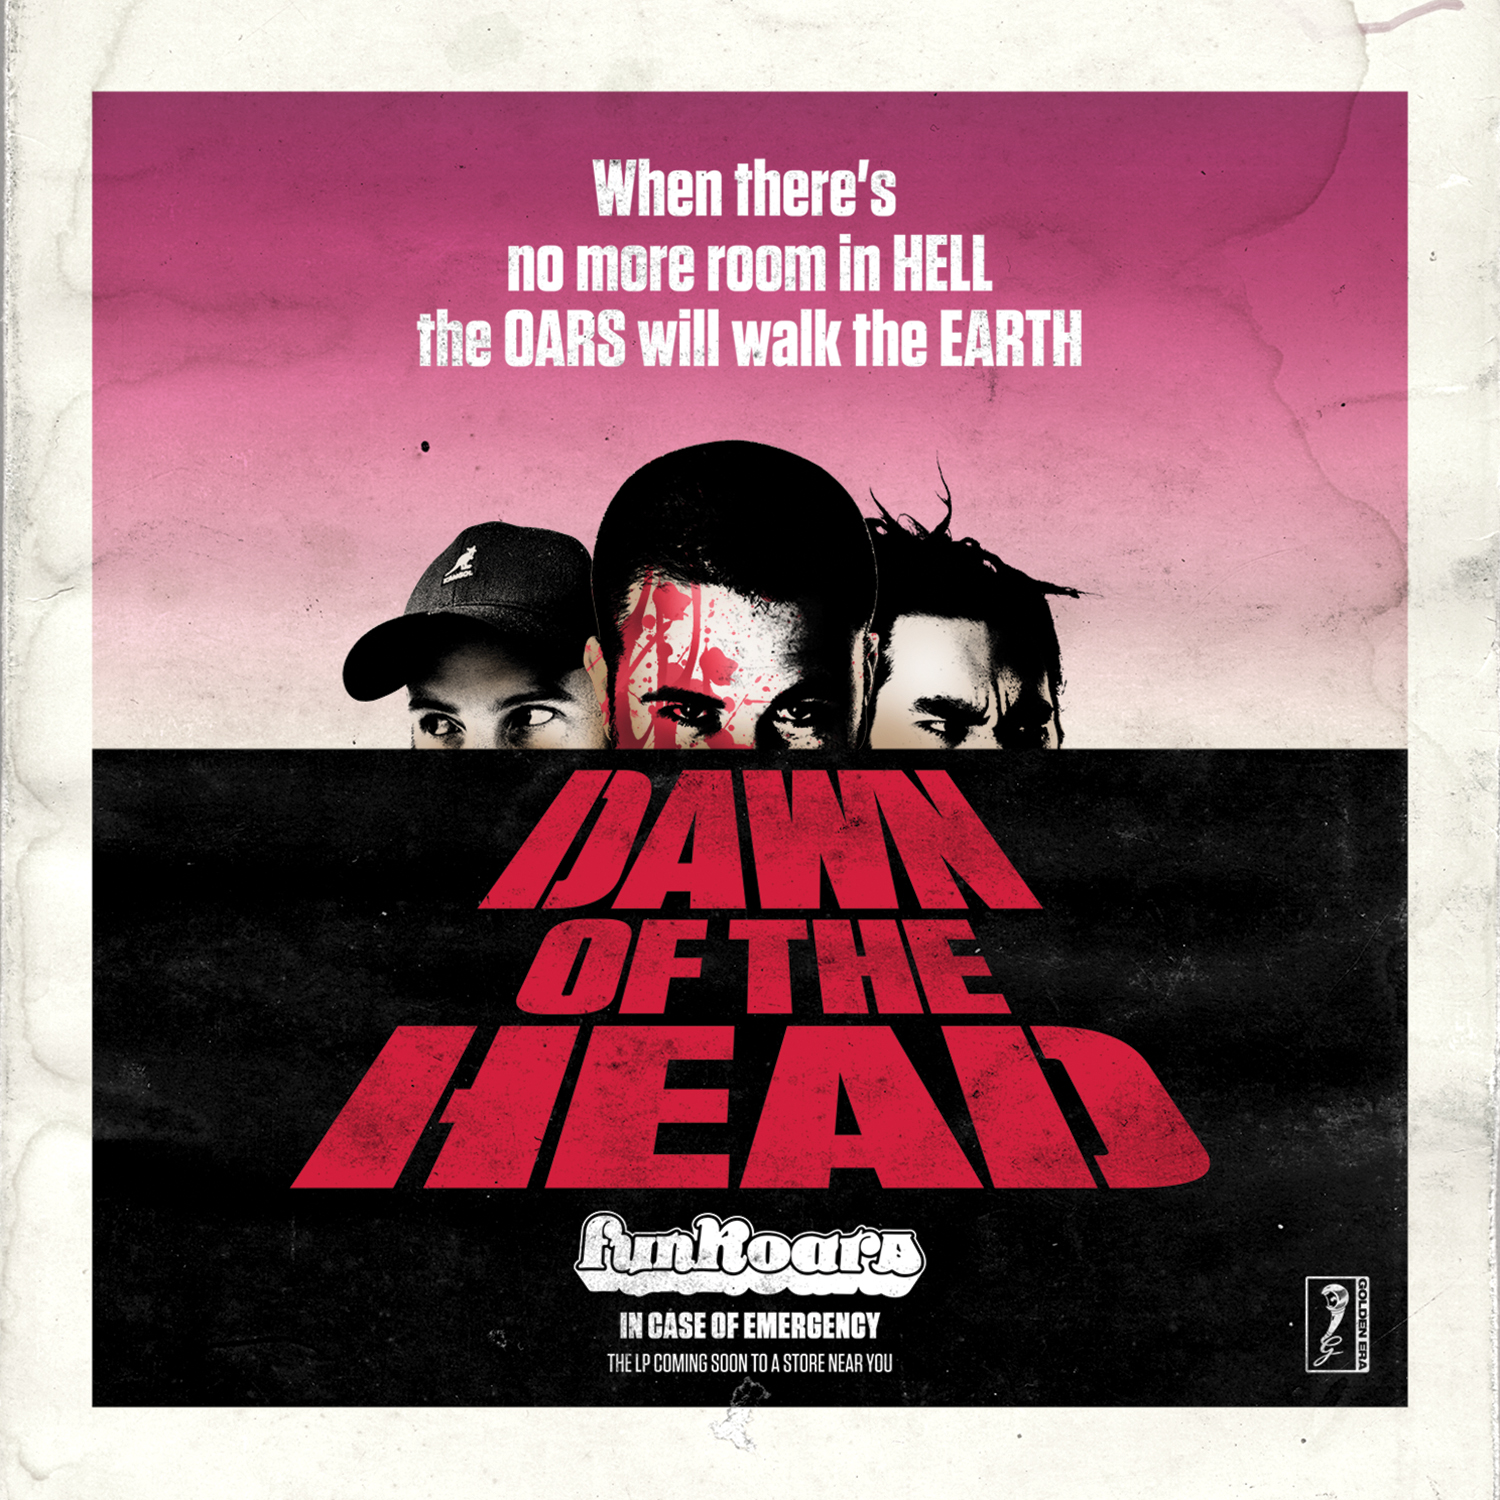 FUNKOARS: DAWN OF THE HEAD EP